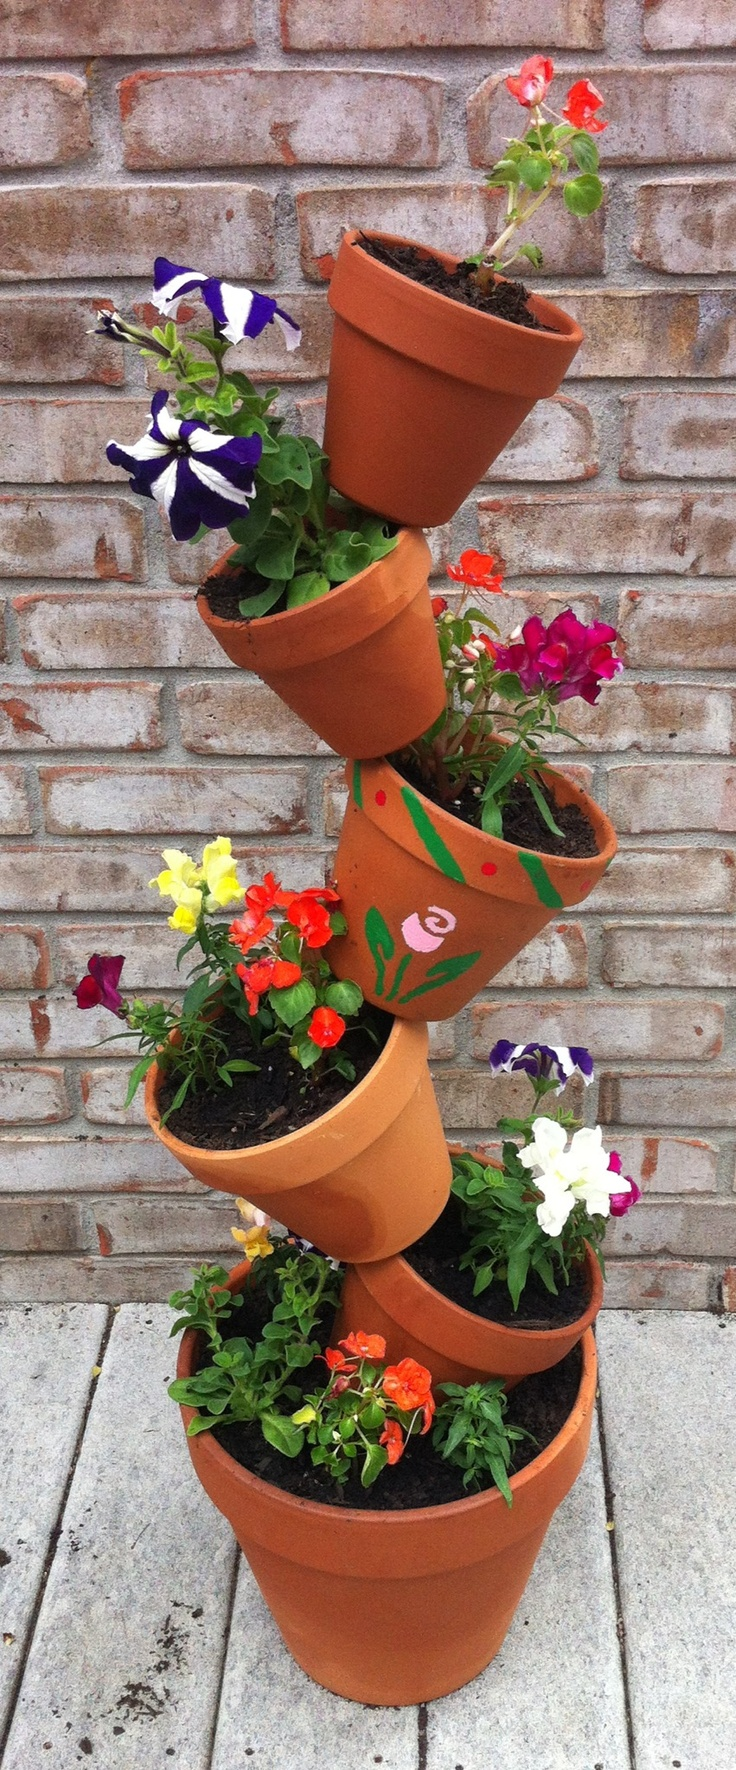 The 25 Best Ideas About Flower Pot Tower On Pinterest Stacked